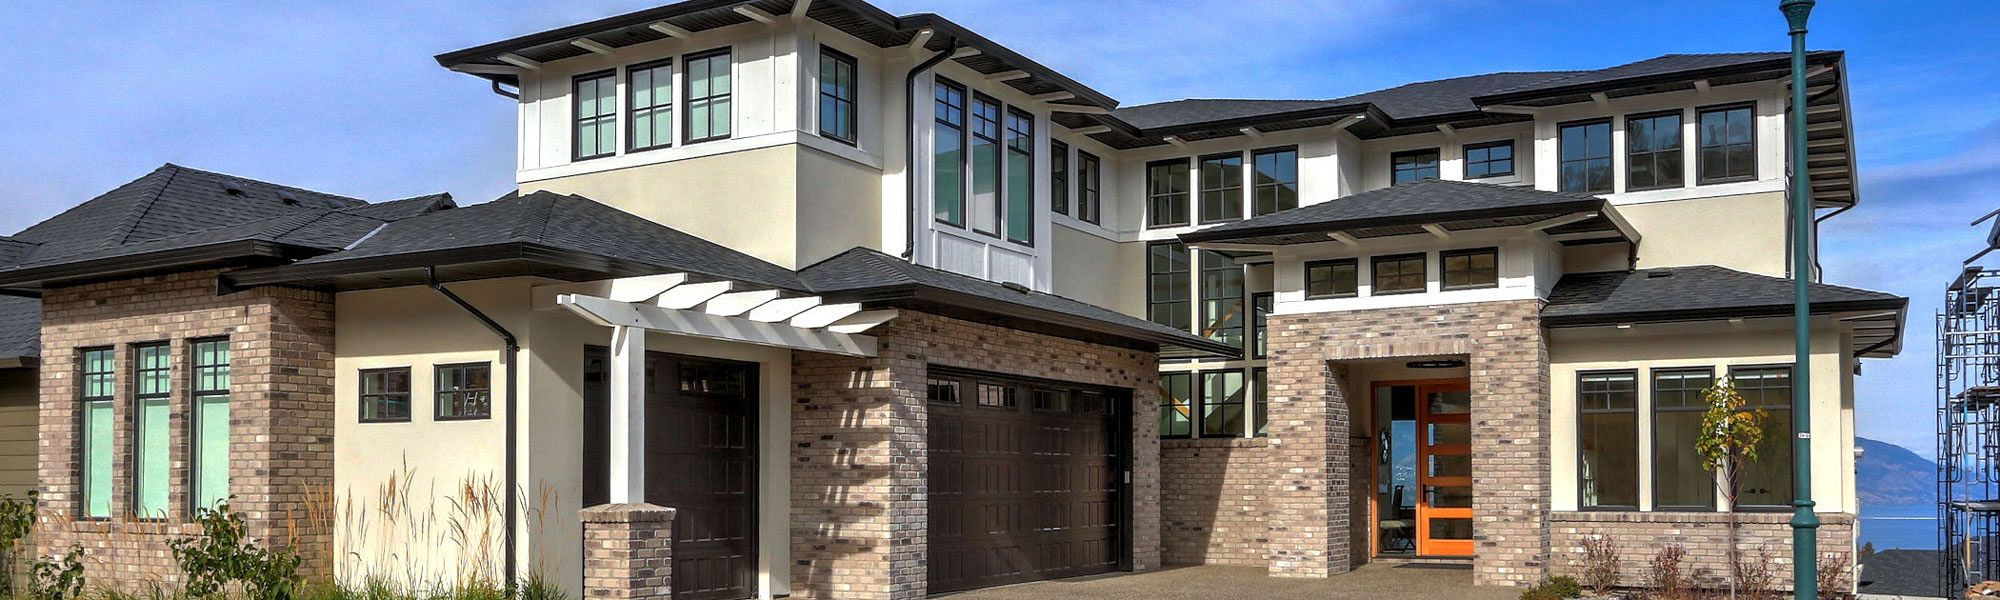 Closeup of 470 Rockview Lane front exterior with brick and white arbour over double garage